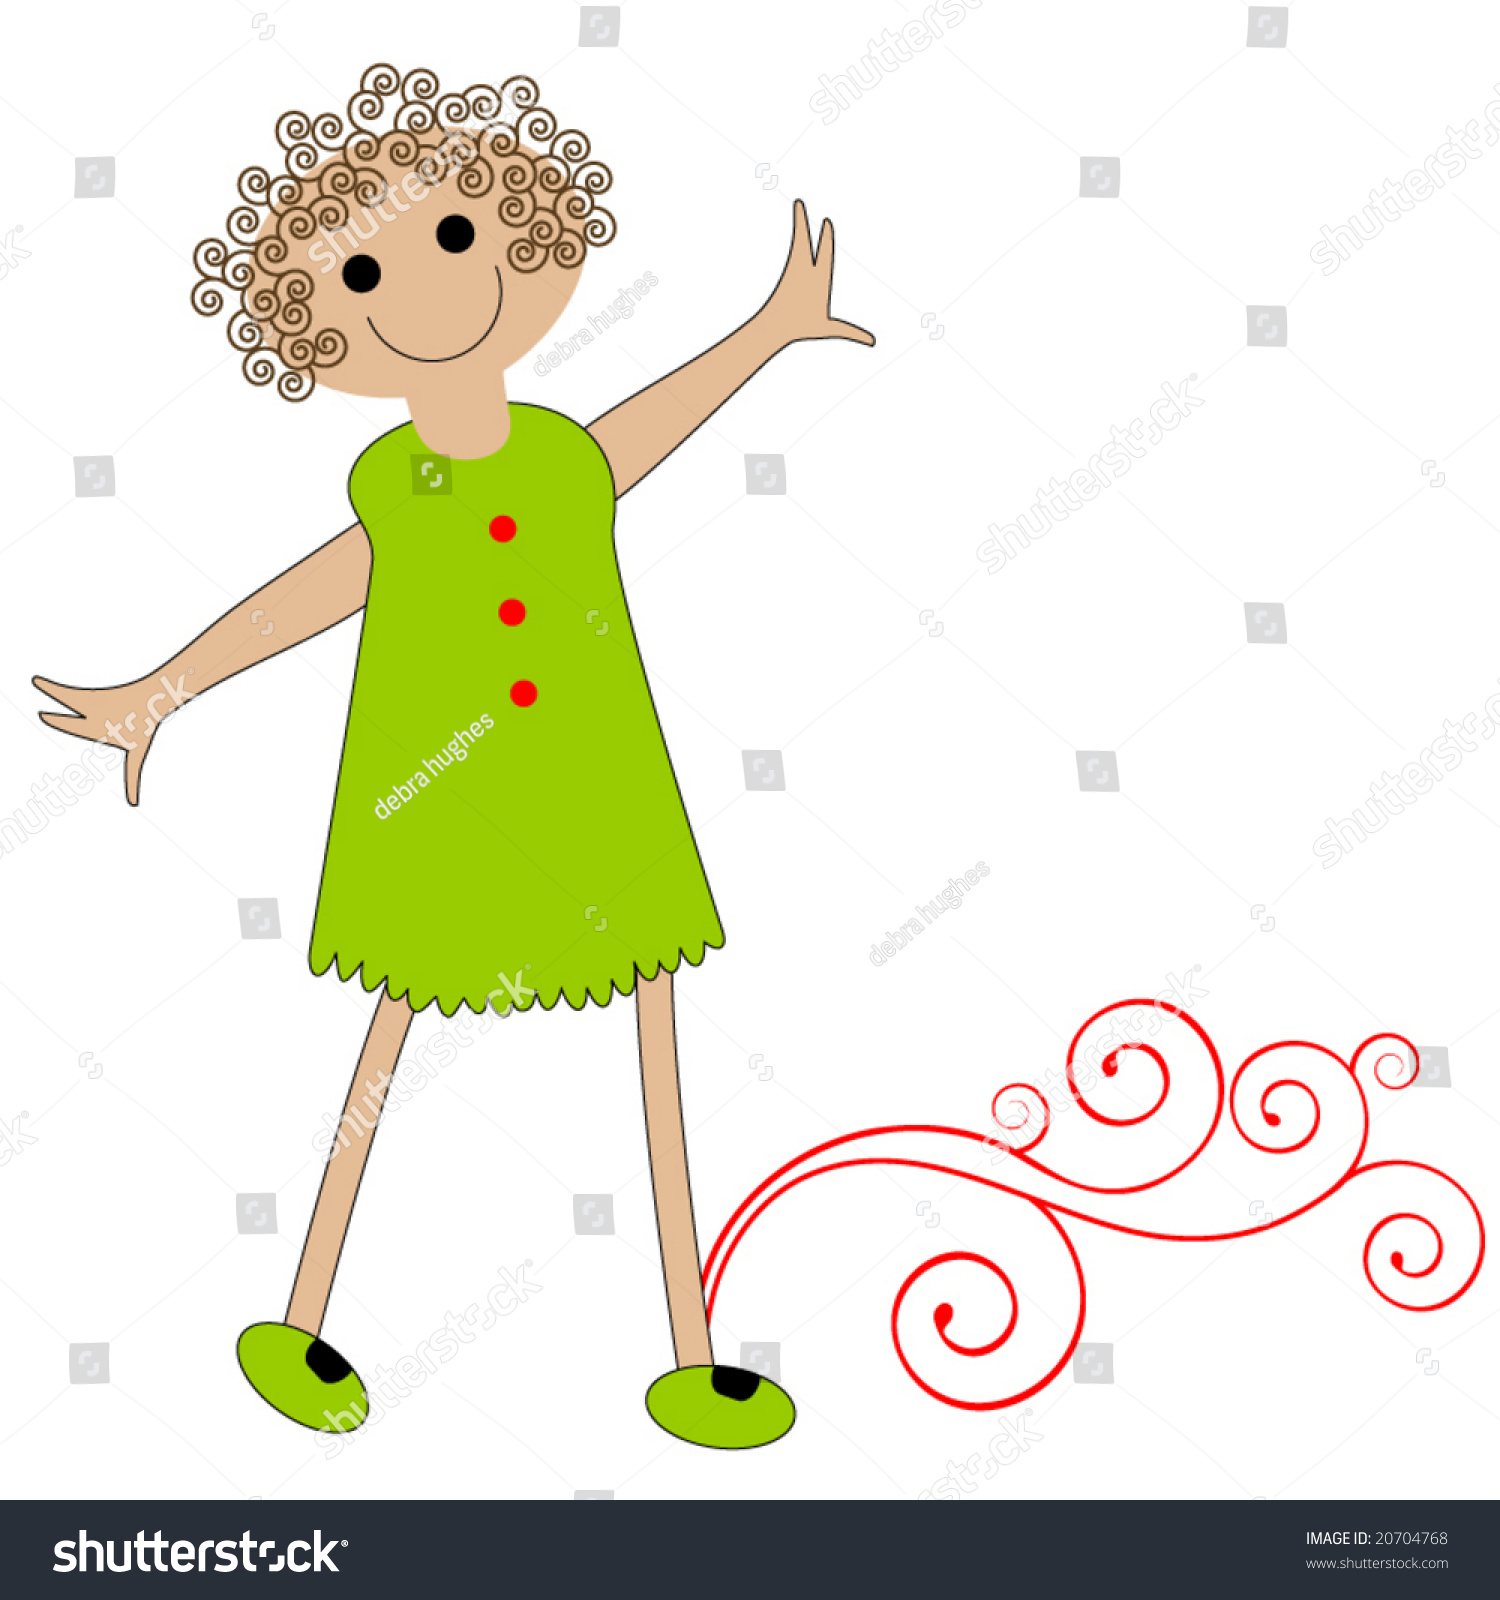 Excellent Happy Cartoon Girl Curly Hair Stock Vector 20704768 Shutterstock Hairstyles For Women Draintrainus